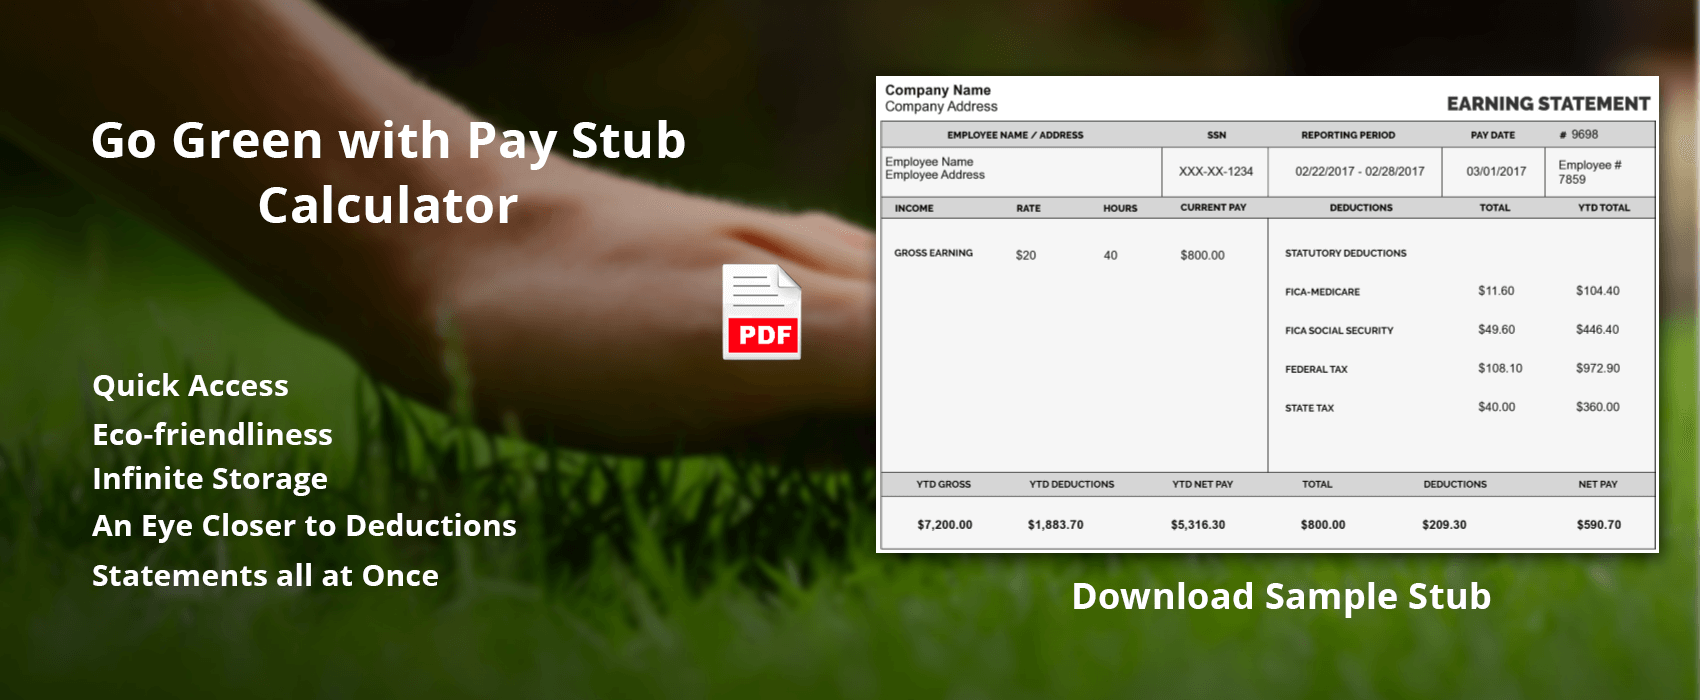 go green with pay stub calculator stub creator